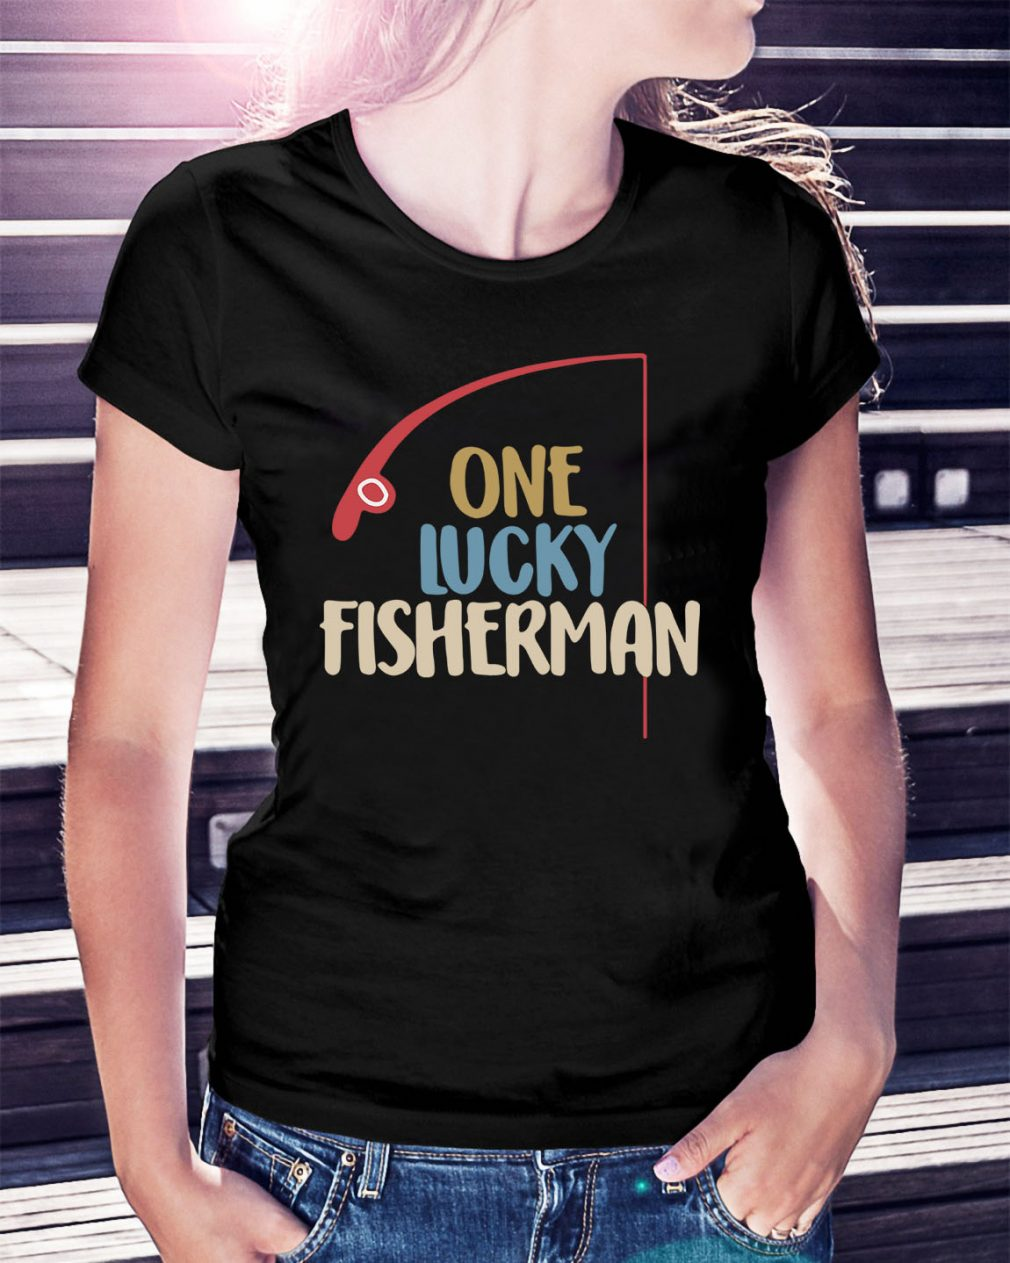 One lucky fisherman Ladies Tee